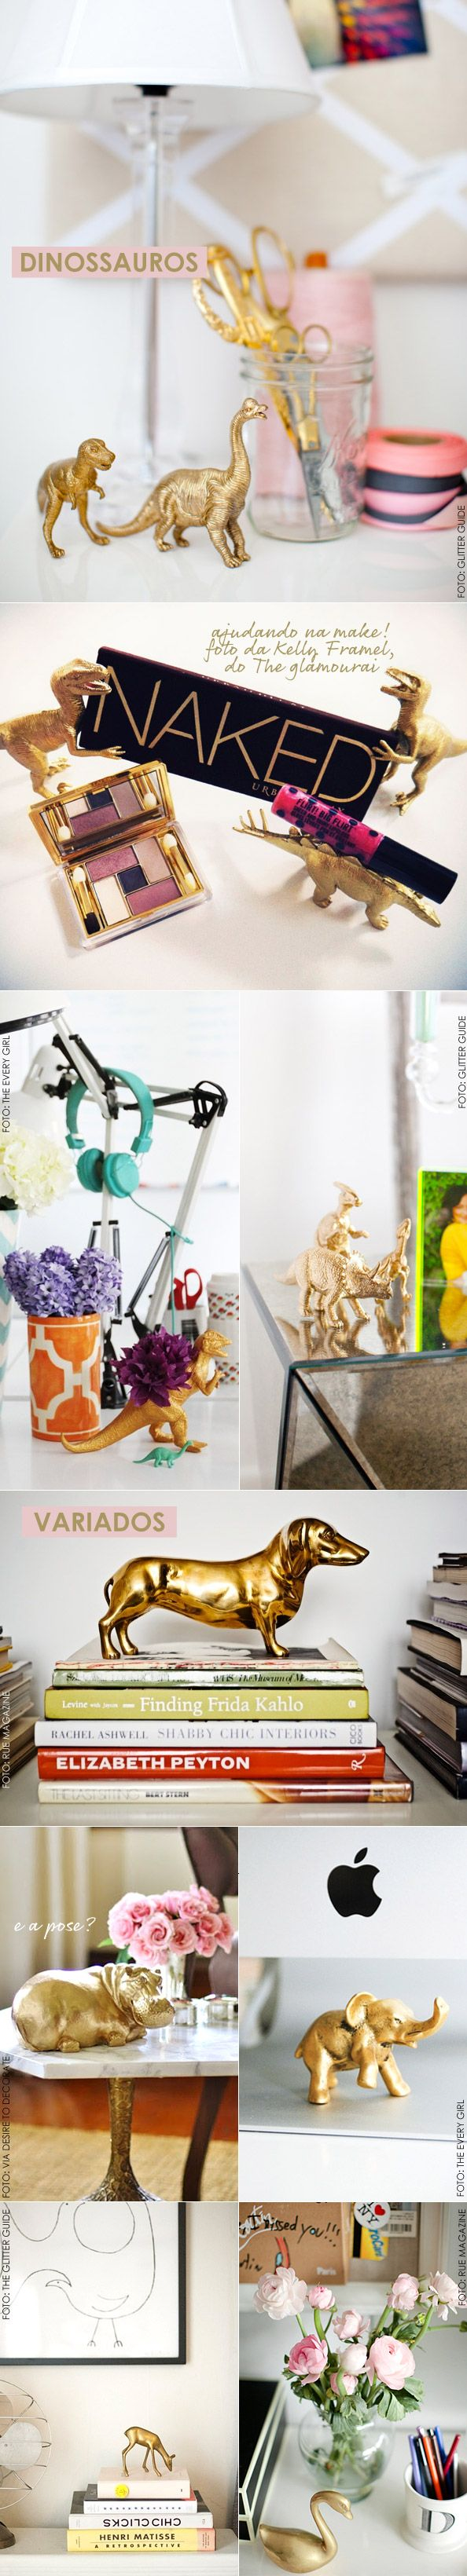 spray paint old plastic toy animals with gold: Sprays, Idea, Craft, Plastic Animals, Spray Paint Plastic, Spraypaint, Diy